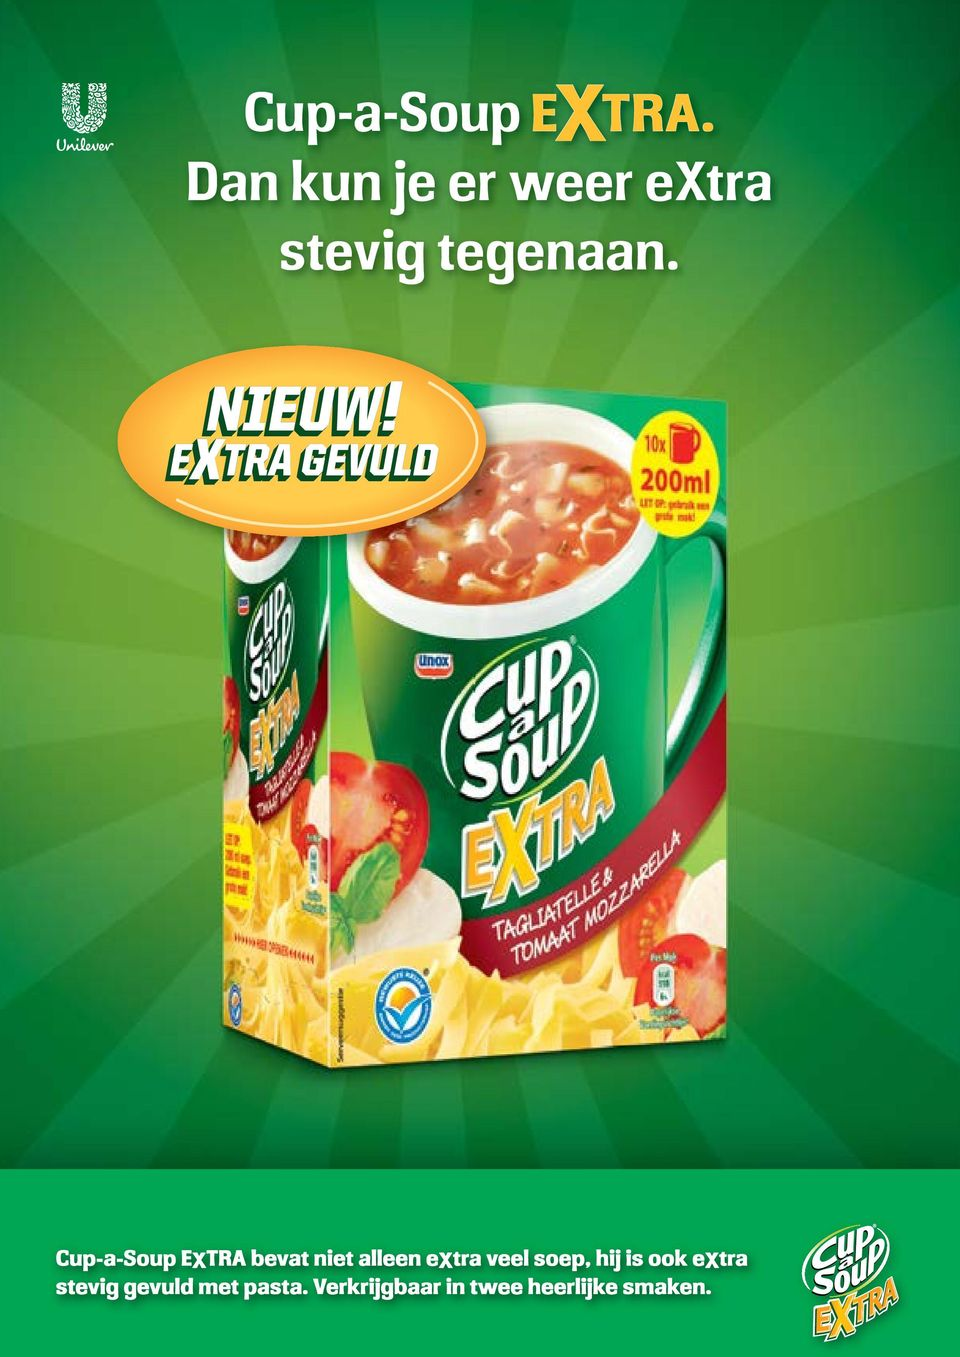 EXTRA GEVULD Cup-a-Soup EXTRA bevat niet alleen